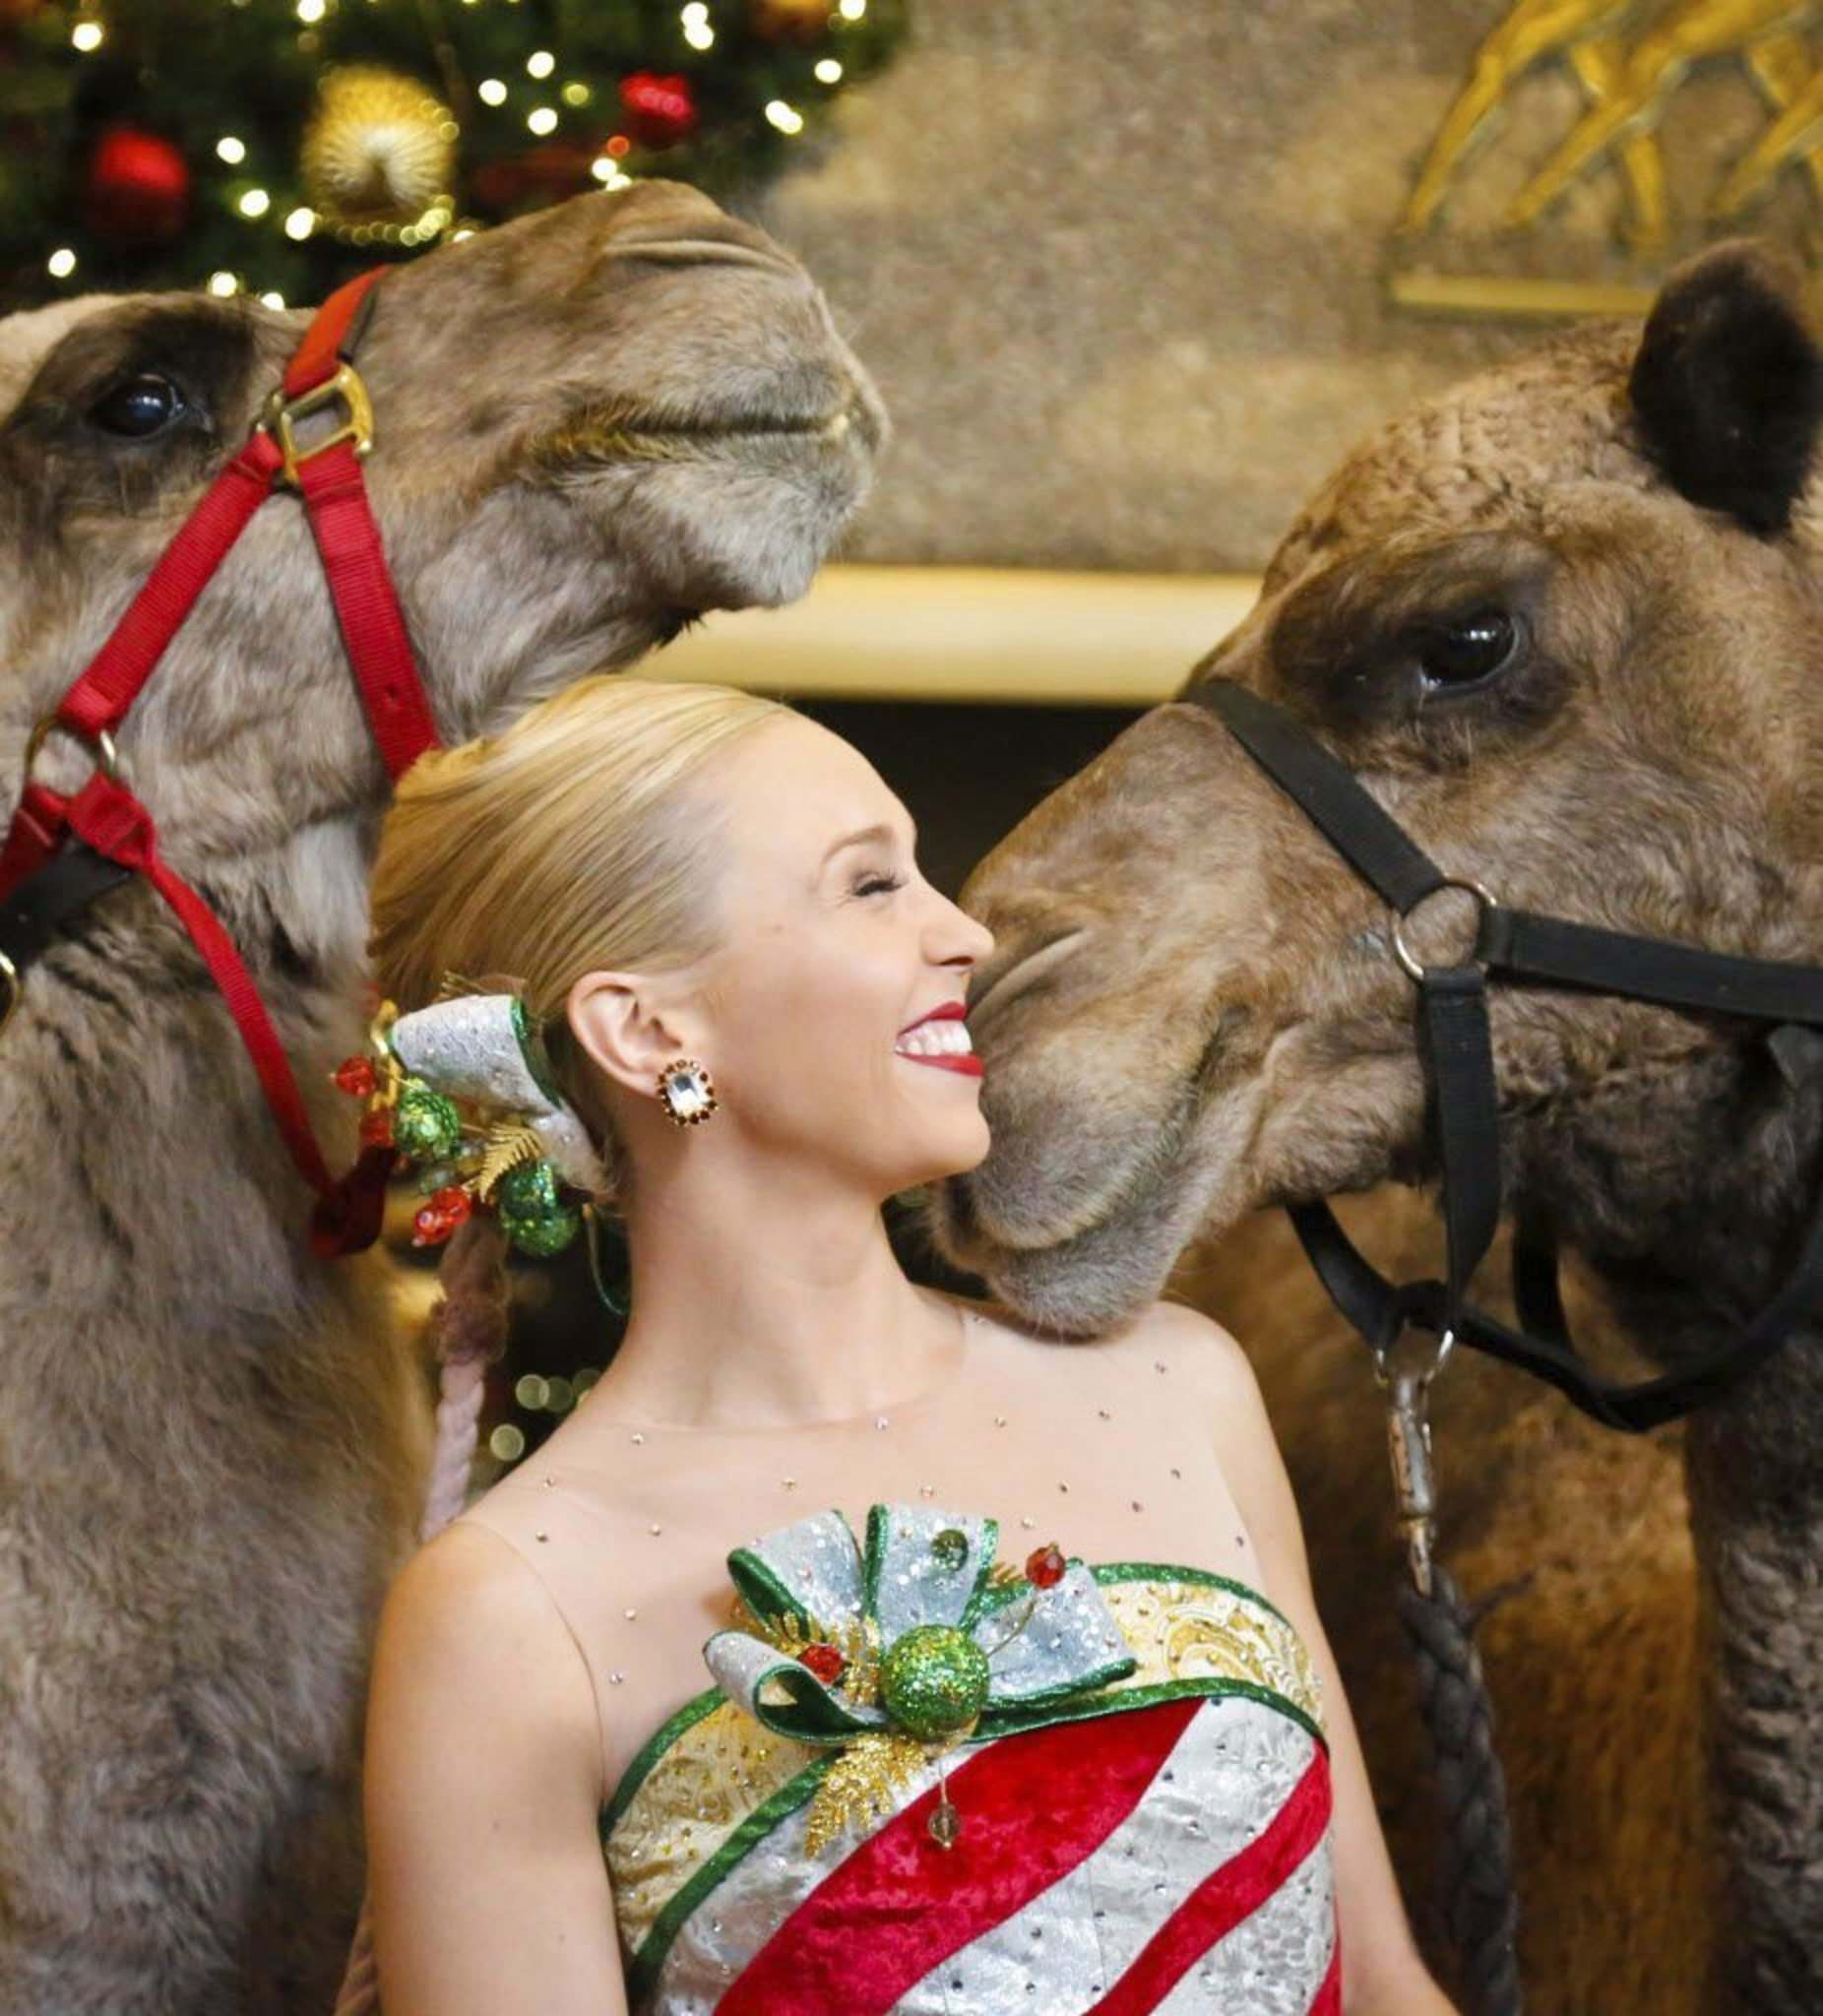 Camels banned from beauty contest after being injected with Botox